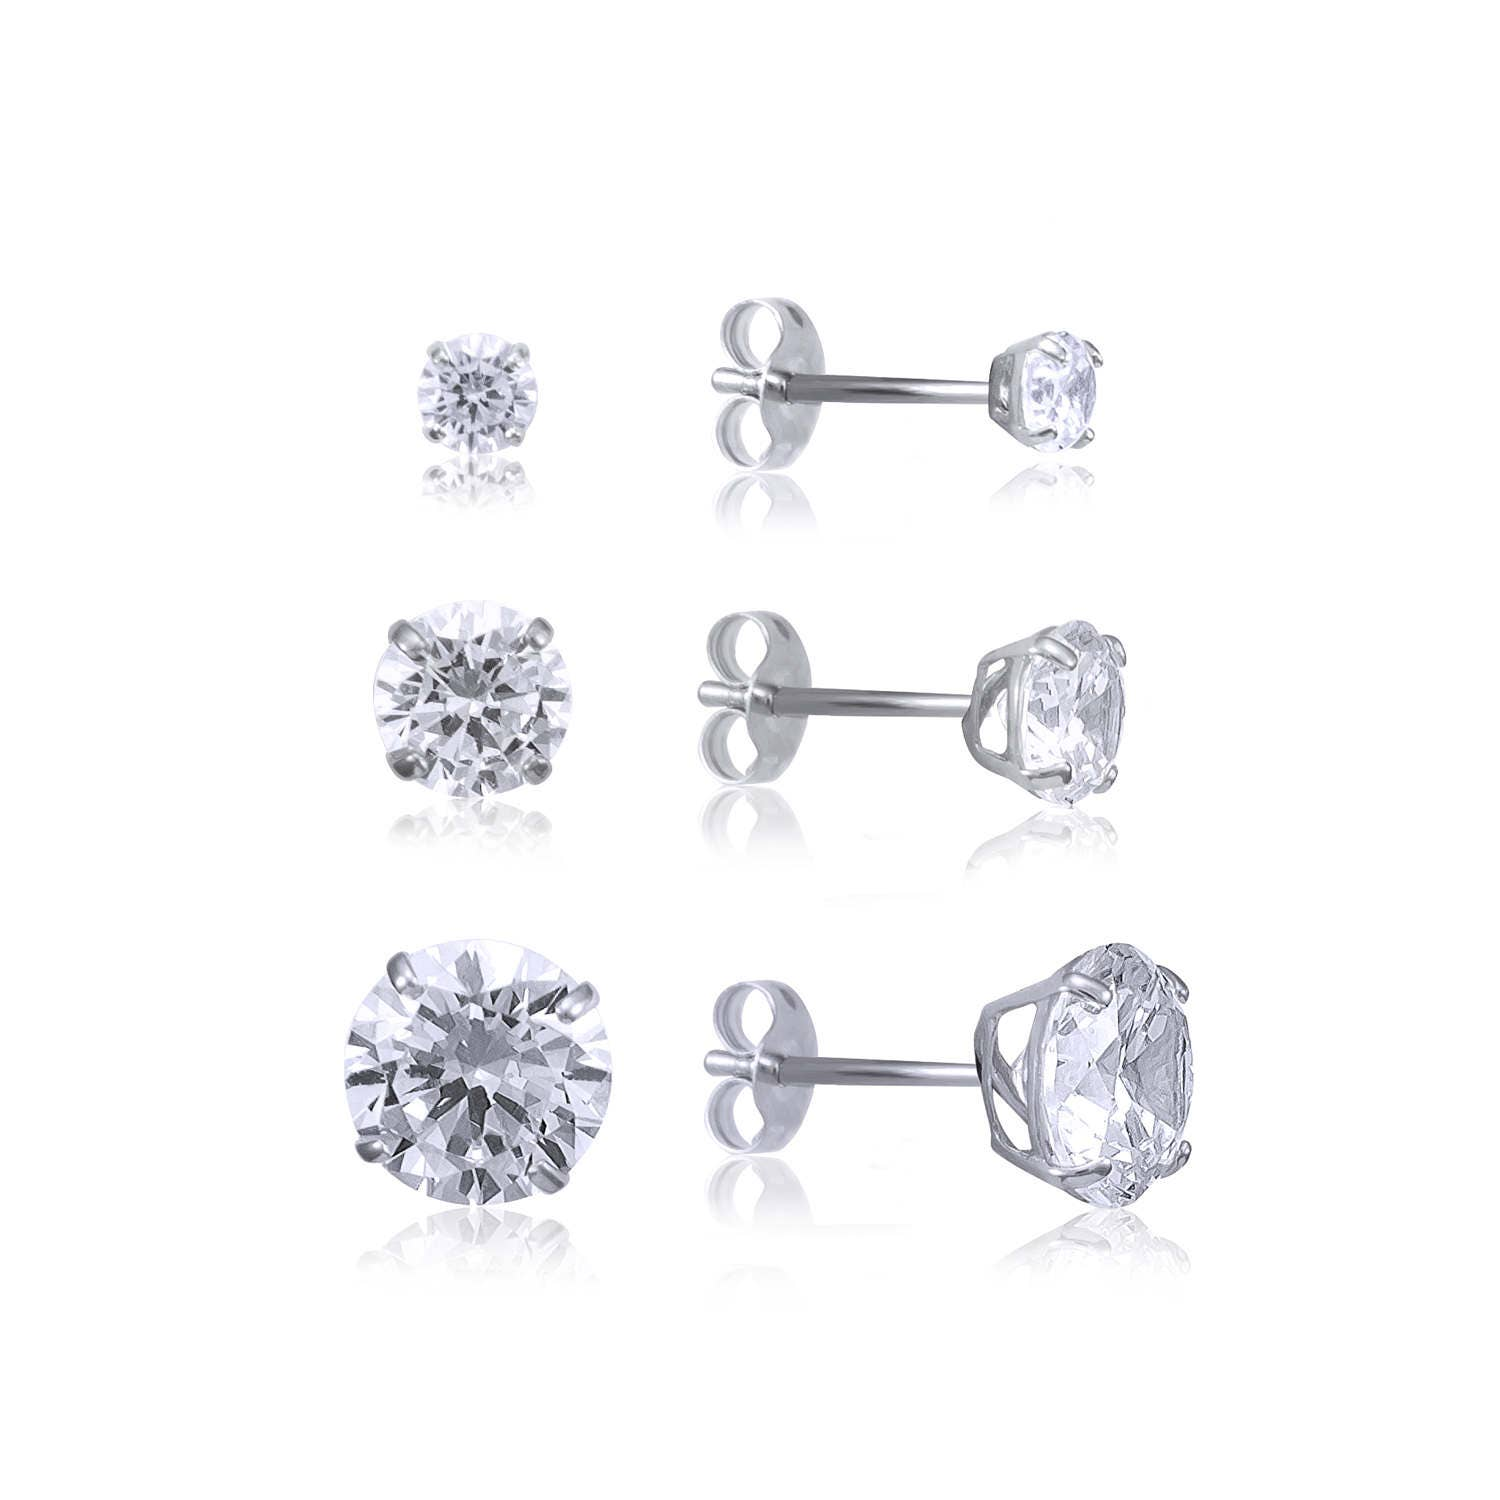 0fc2f947b76 14K Solid White Gold Cubic Zirconia Round Cut Solitaire Stud Earrings  Basket 2.0-7.0mm